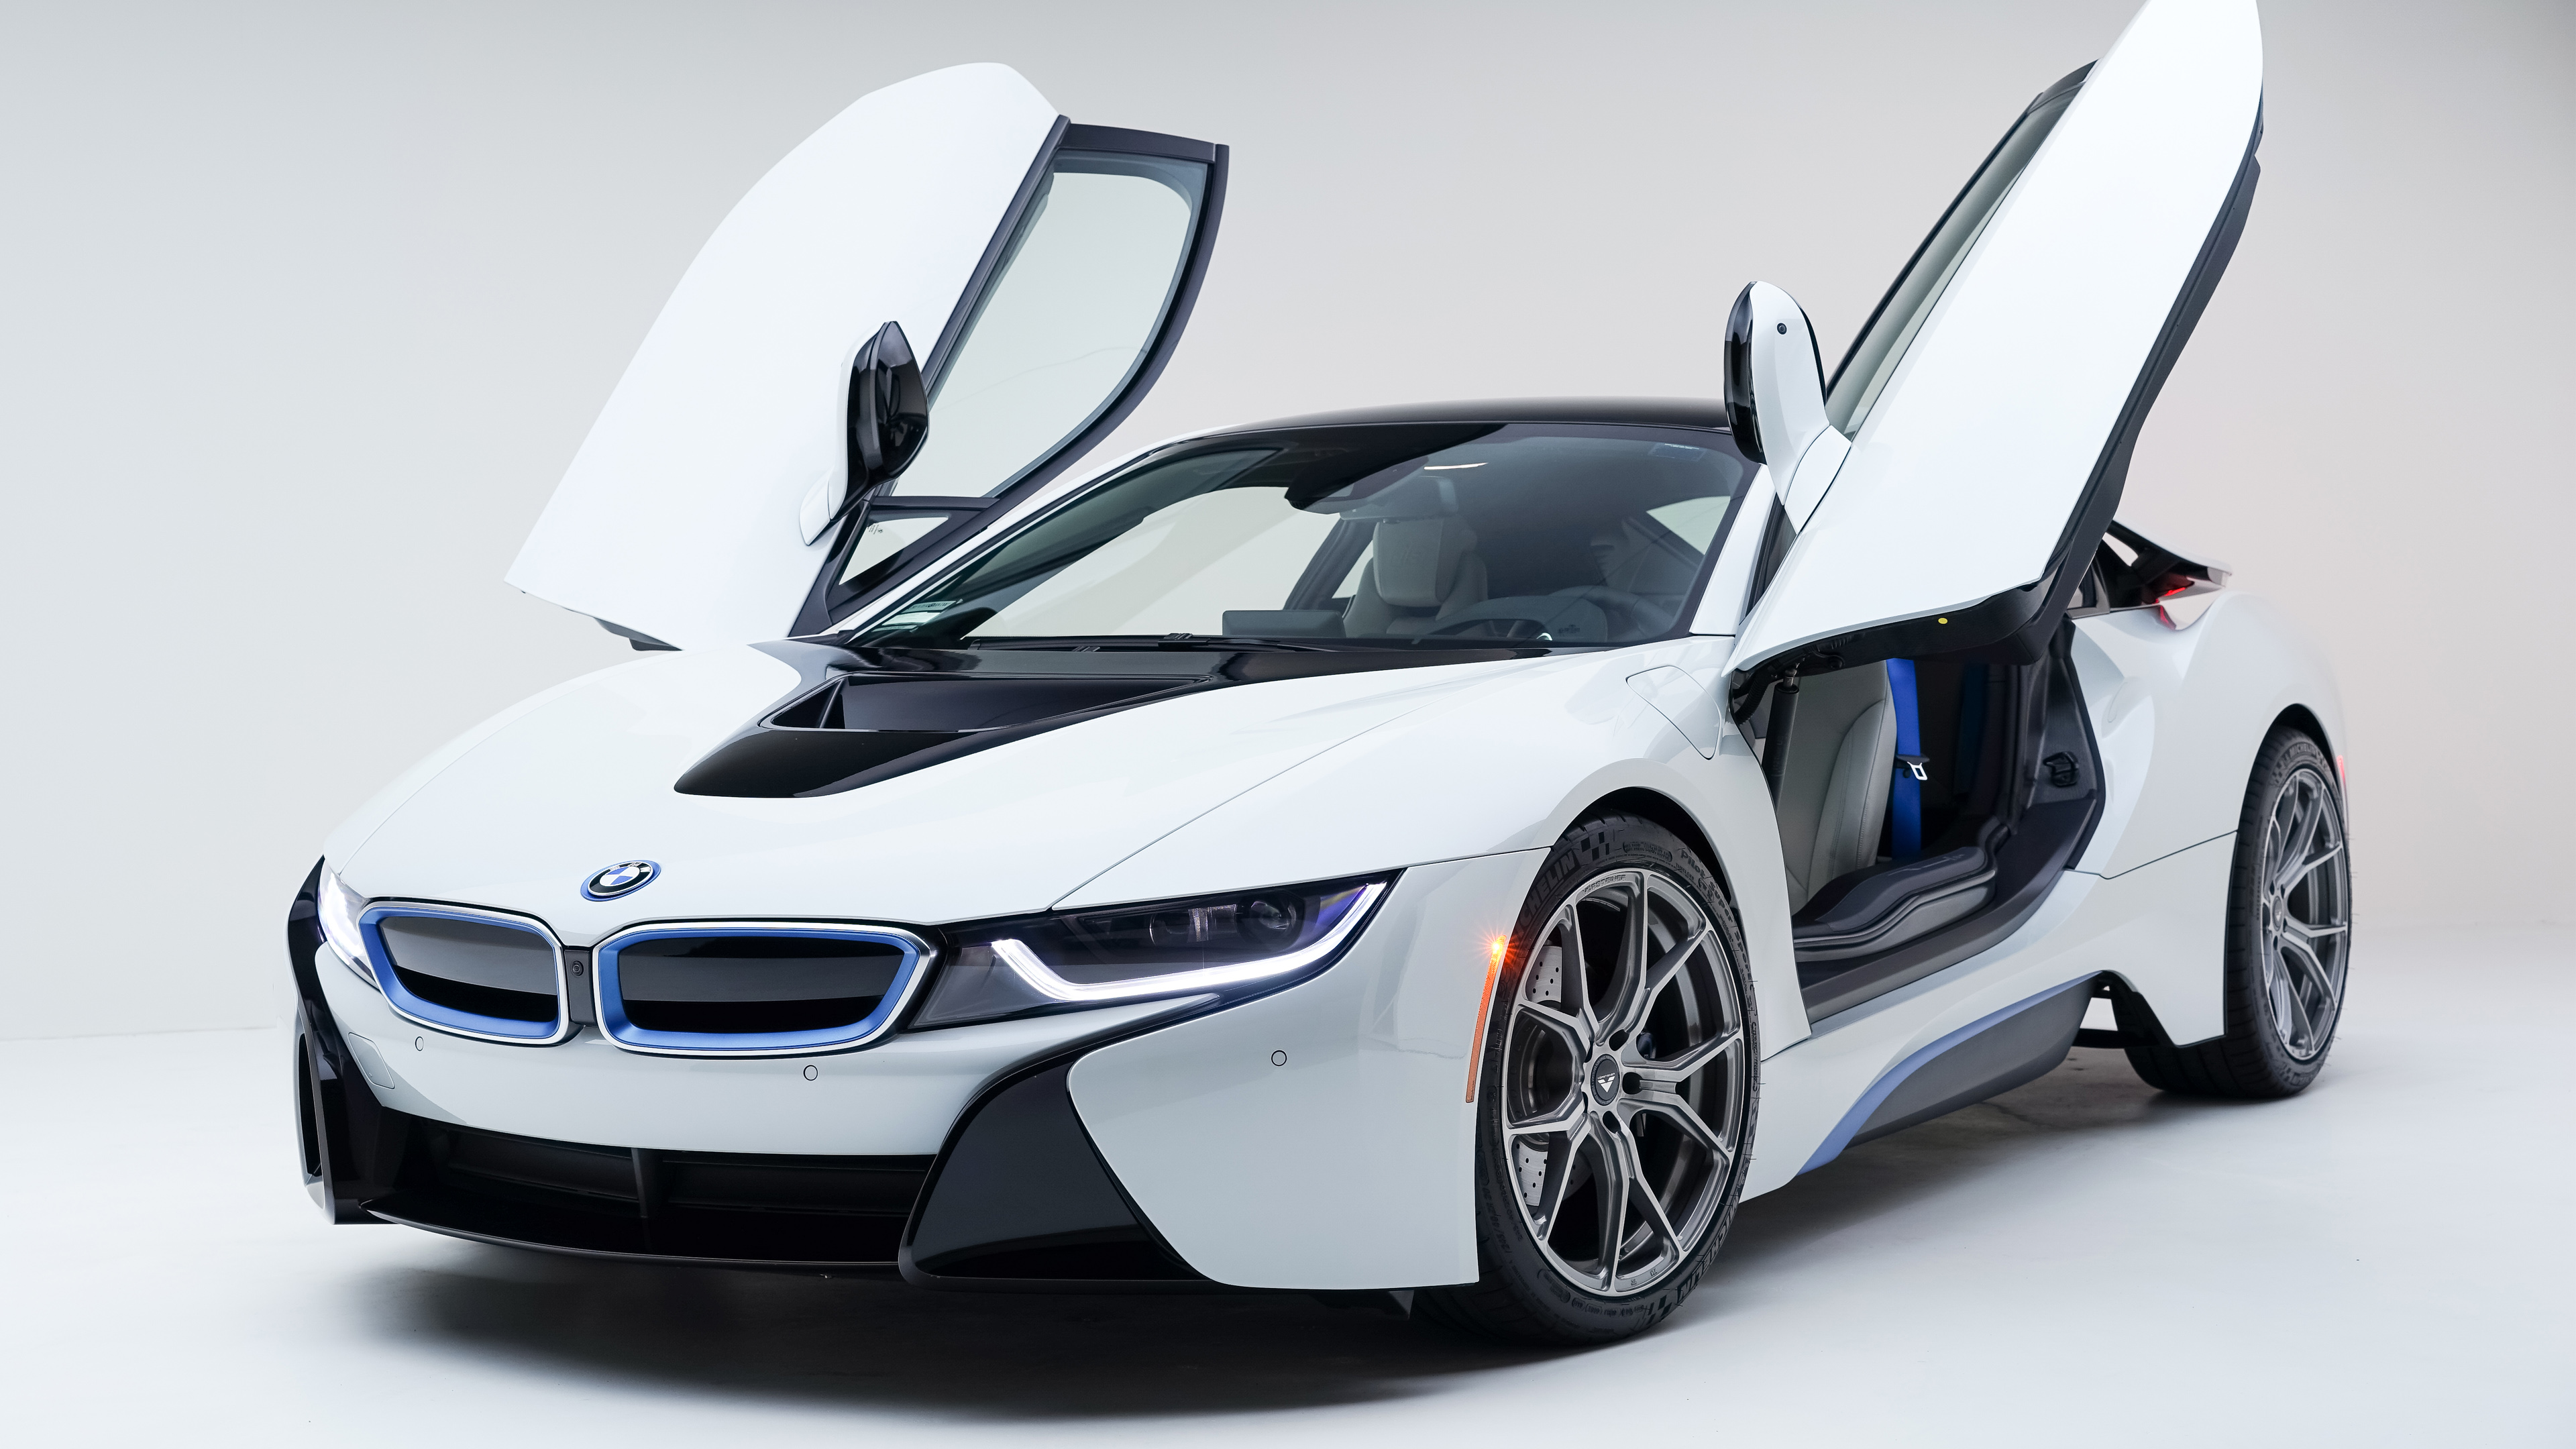 3840x2160 - BMW i3 Concept Wallpapers 13